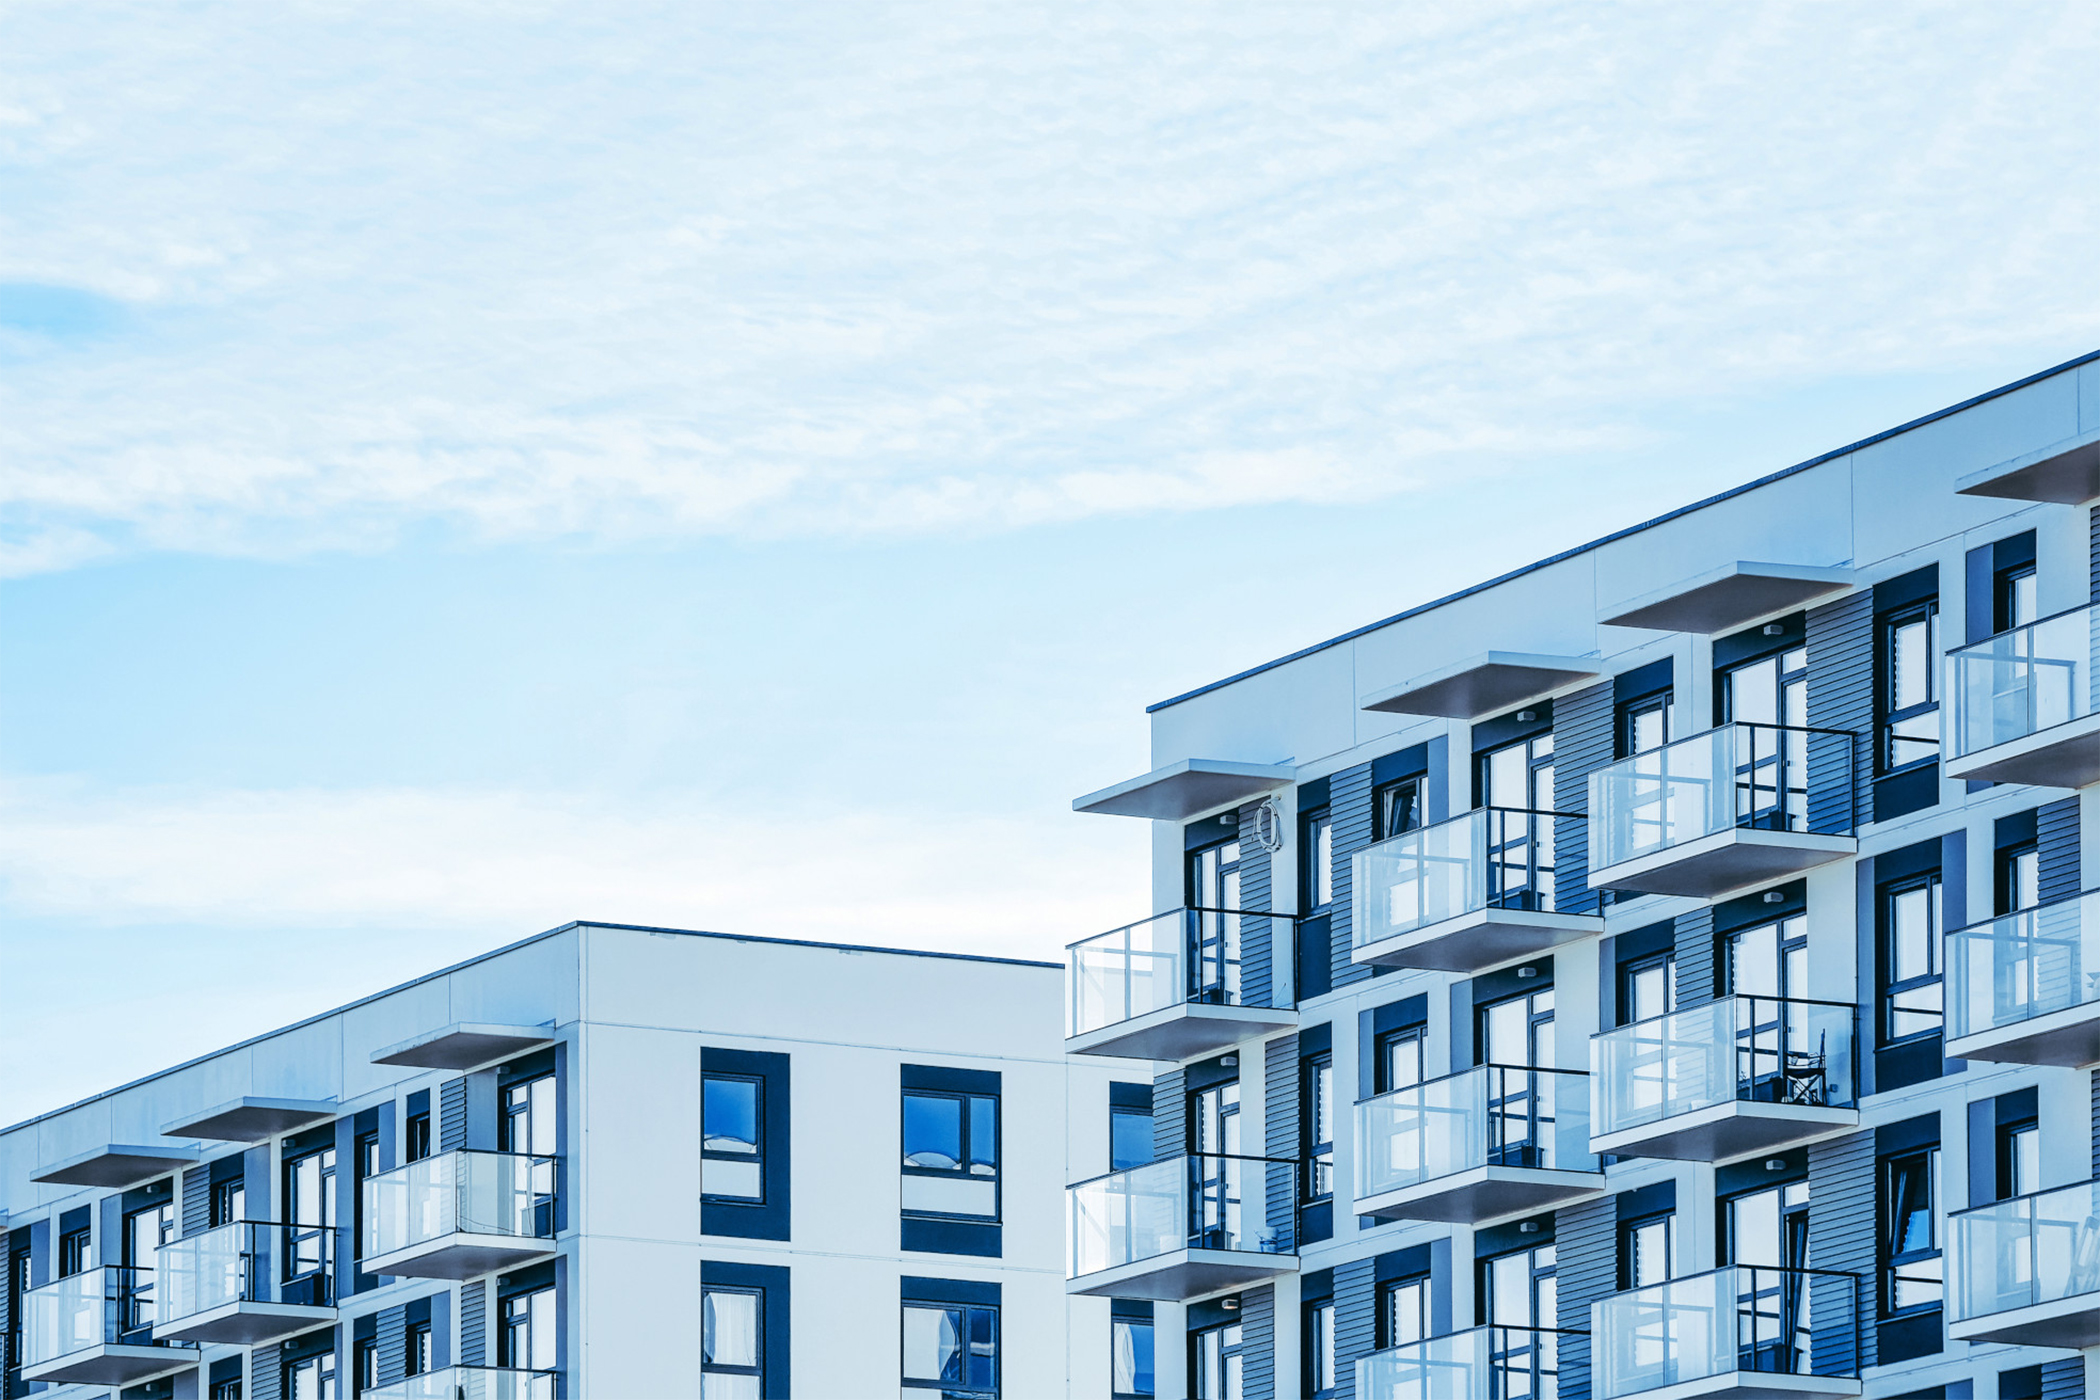 With the federal eviction moratorium's expiration, questions remain for landlords around the country. (Getty Images)